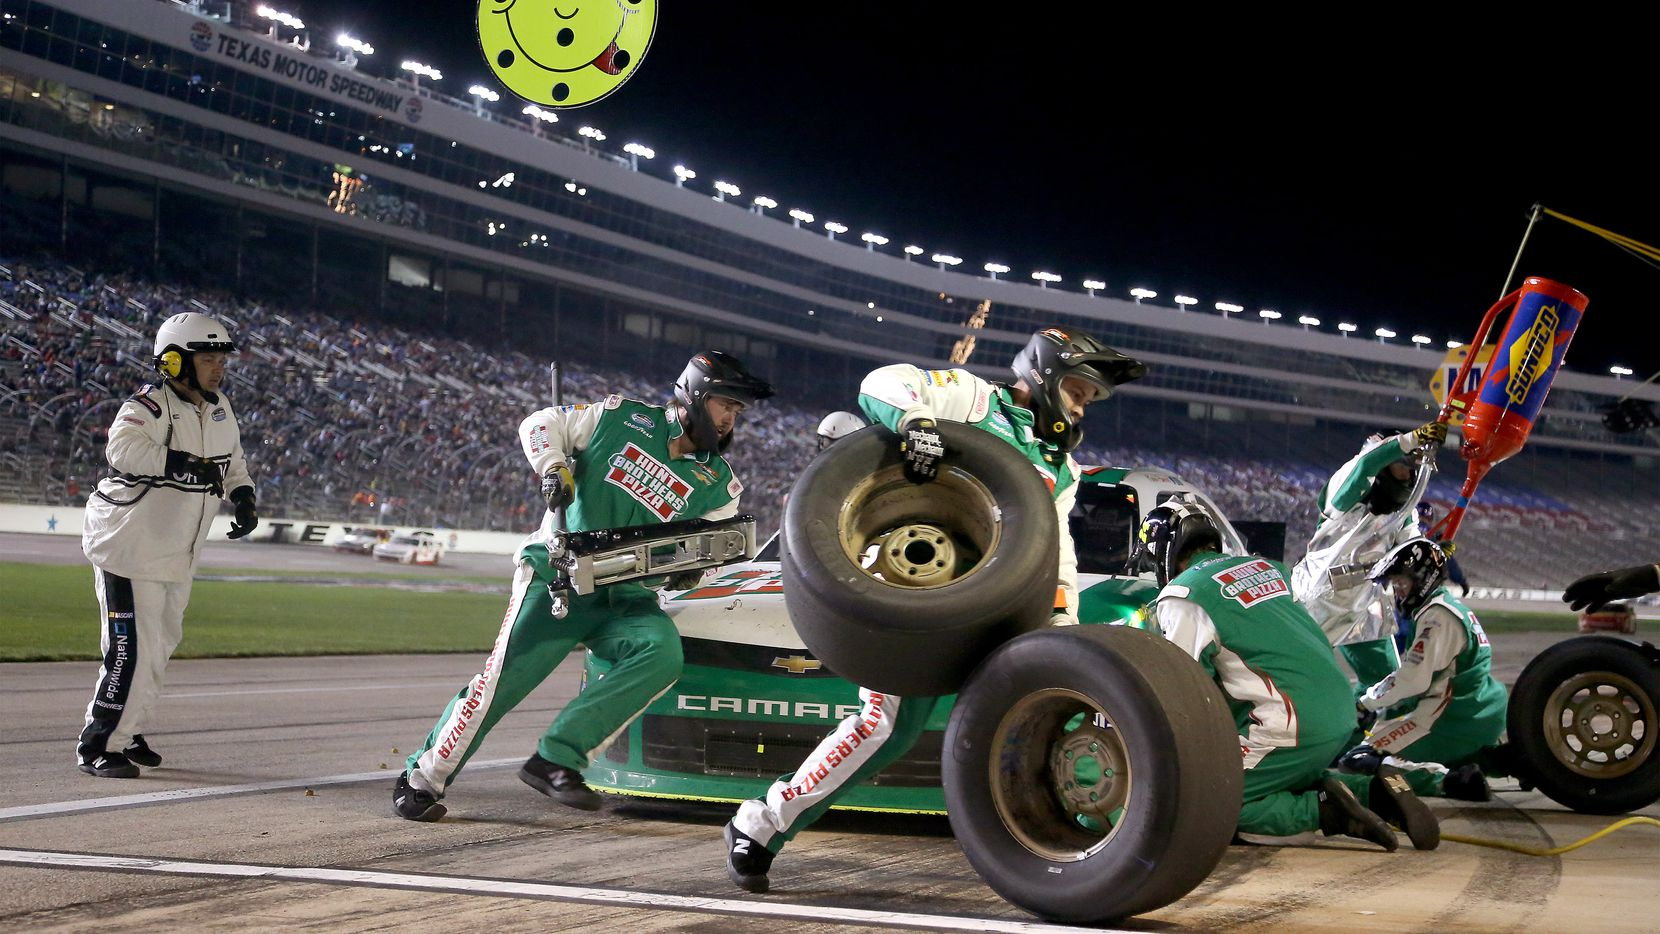 Pit crew members for Kevin Harvick in the #5 Hunt Brothers Pizza Chevrolet during a pit stop in the Nascar 18th Annual O'Reilly Auto Parts 300 at Texas Motor Speedway in Fort Worth, Texas on Friday, April 4, 2014.